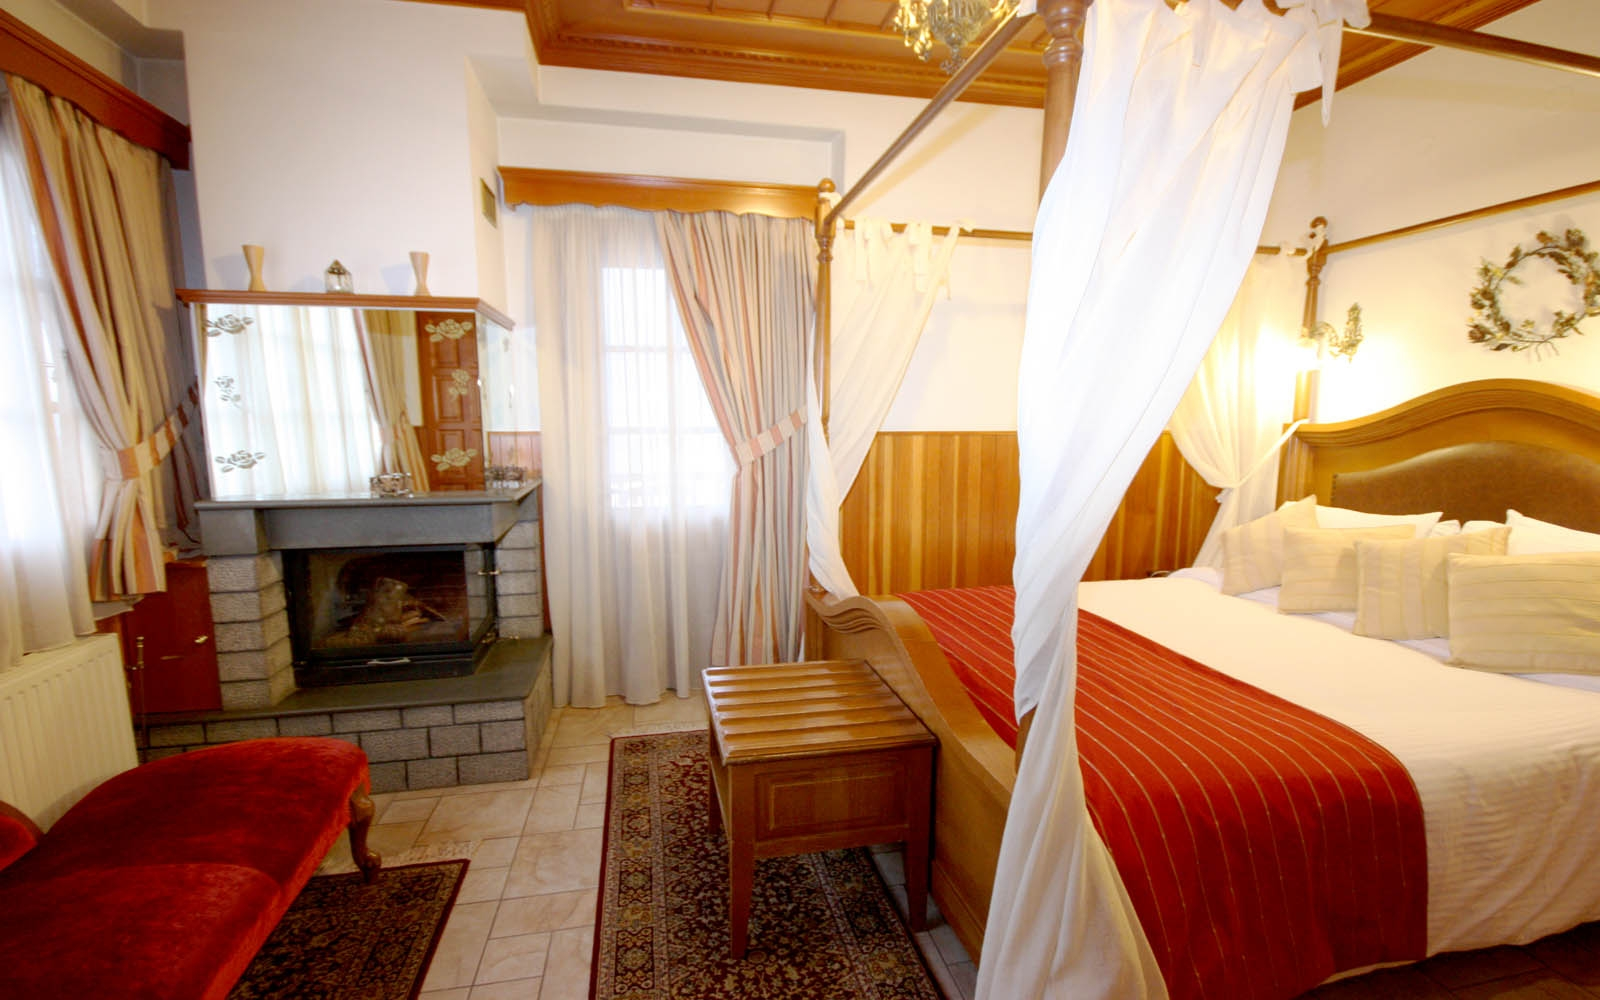 Deluxe Room with fireplace & hydromassage